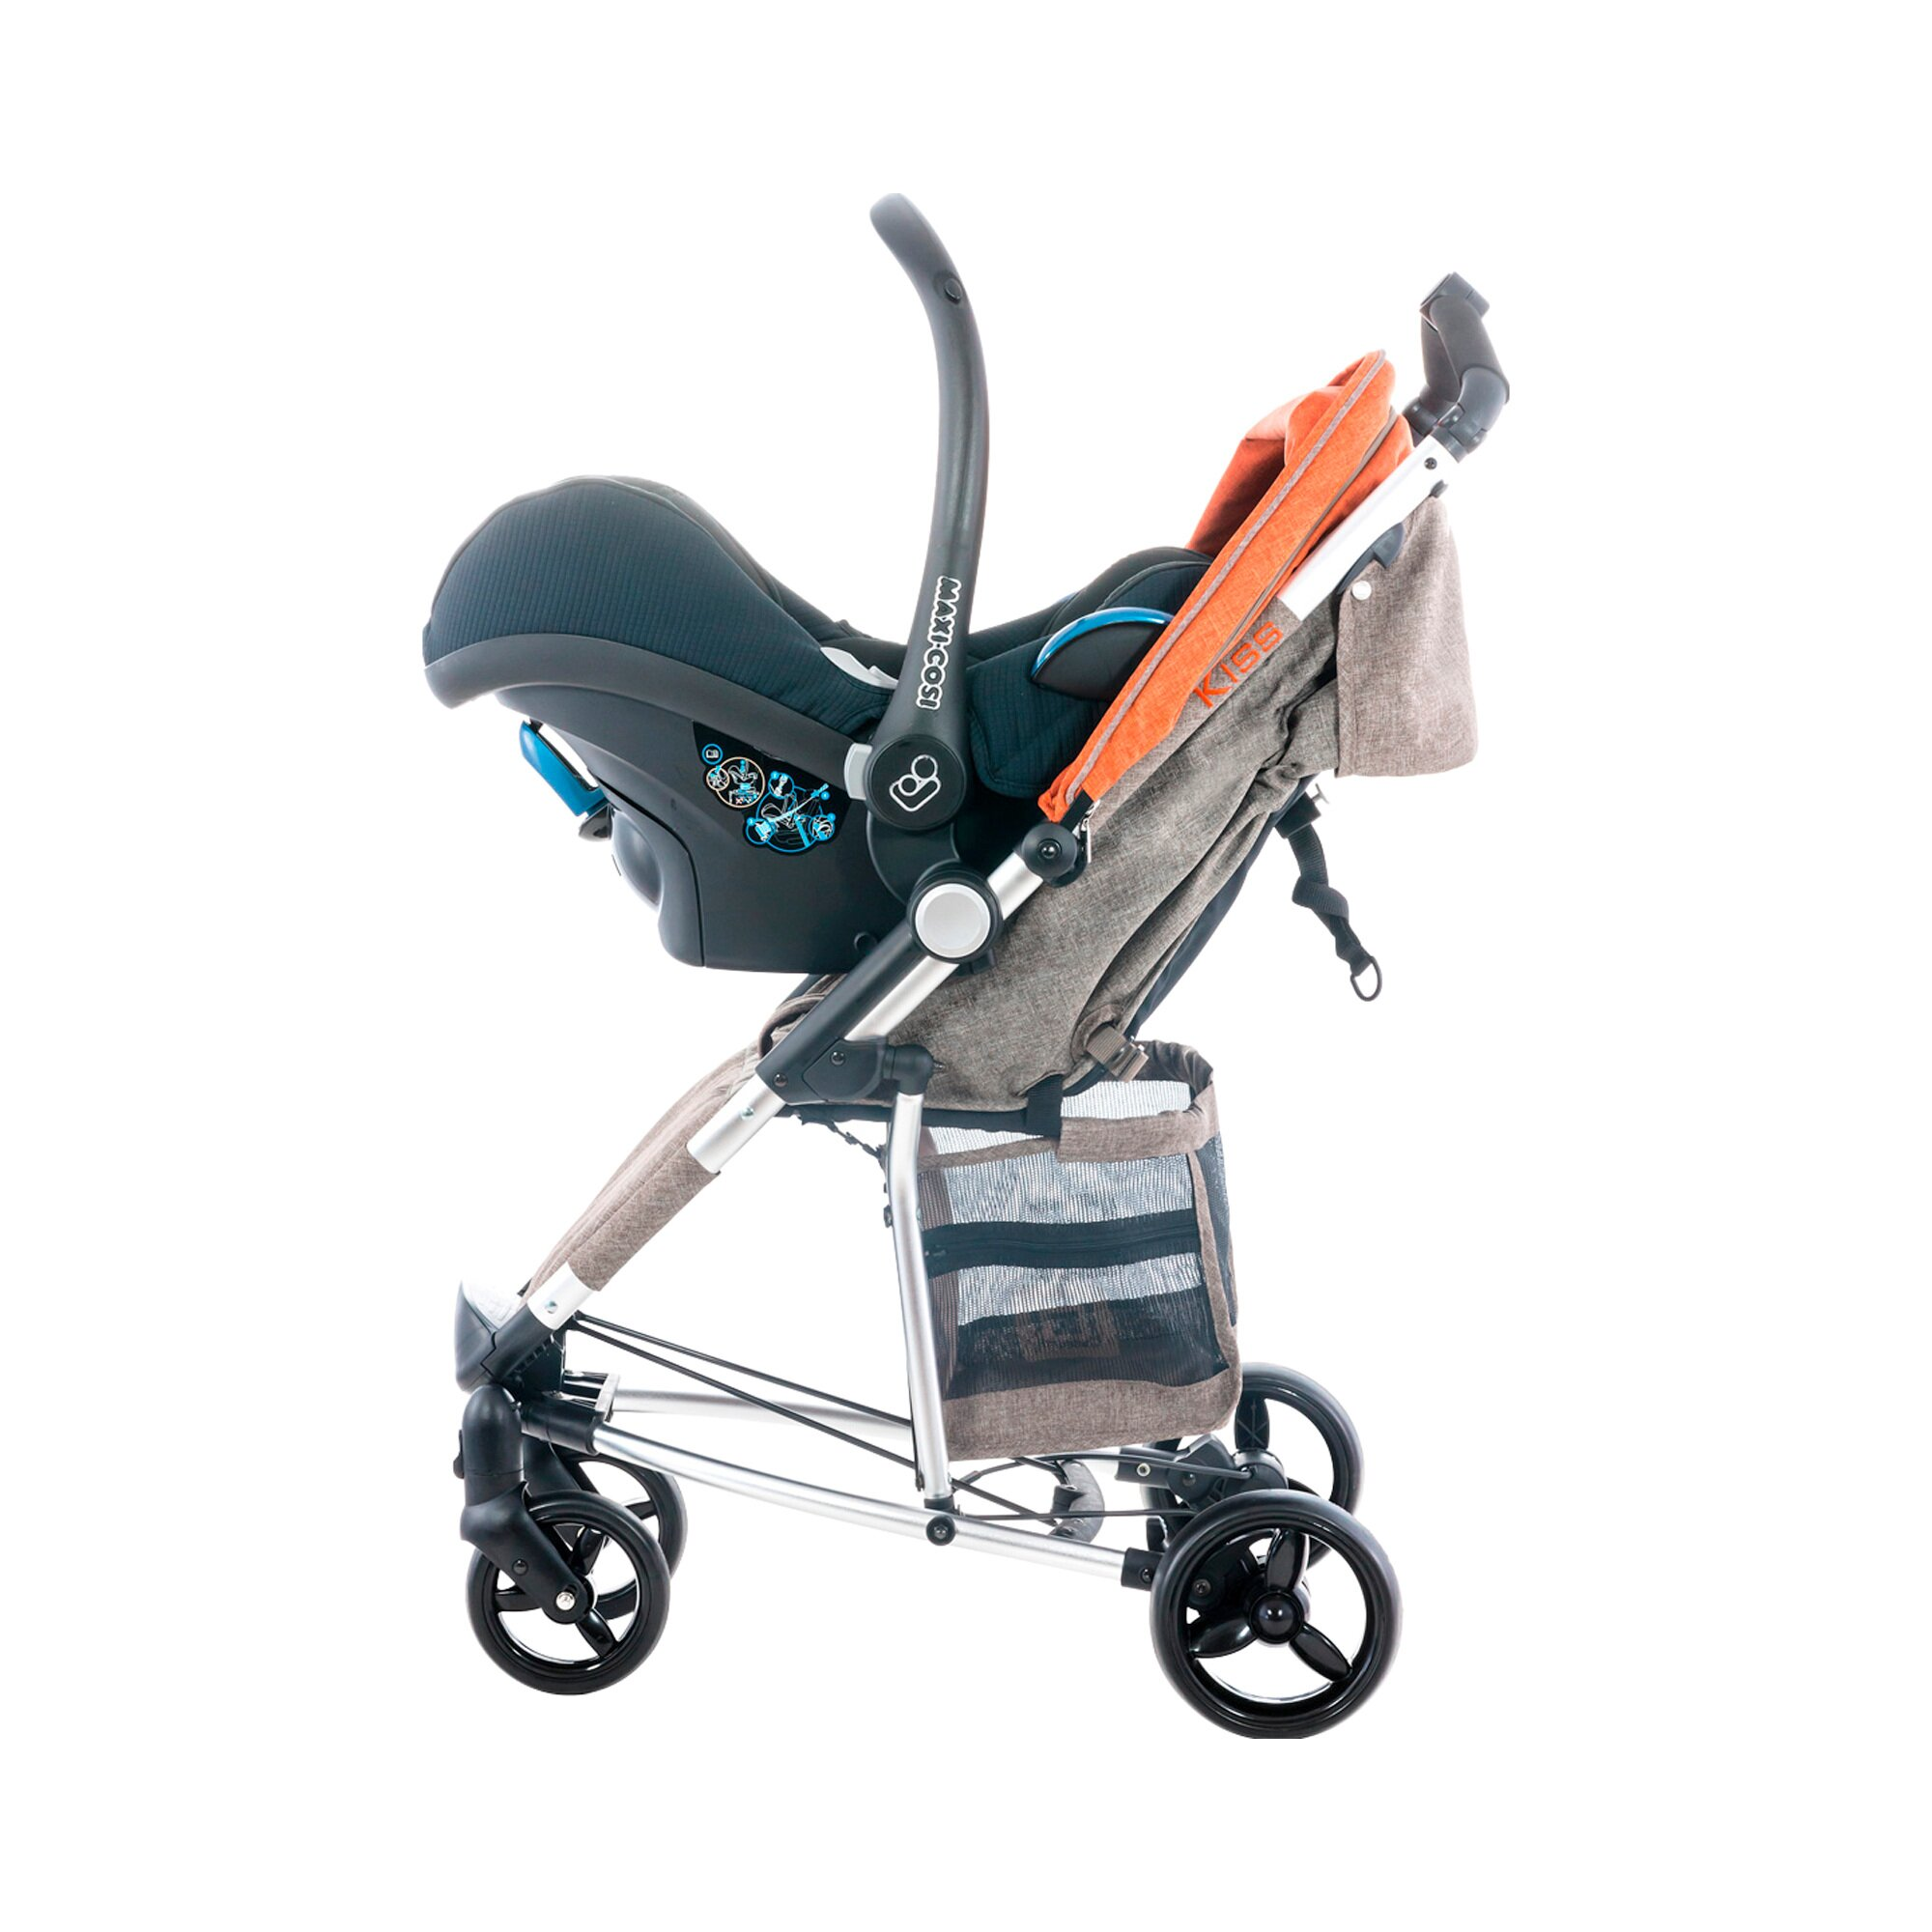 City Maxi-Cosi Adapter für Buggy Flac, Buggy Kiss